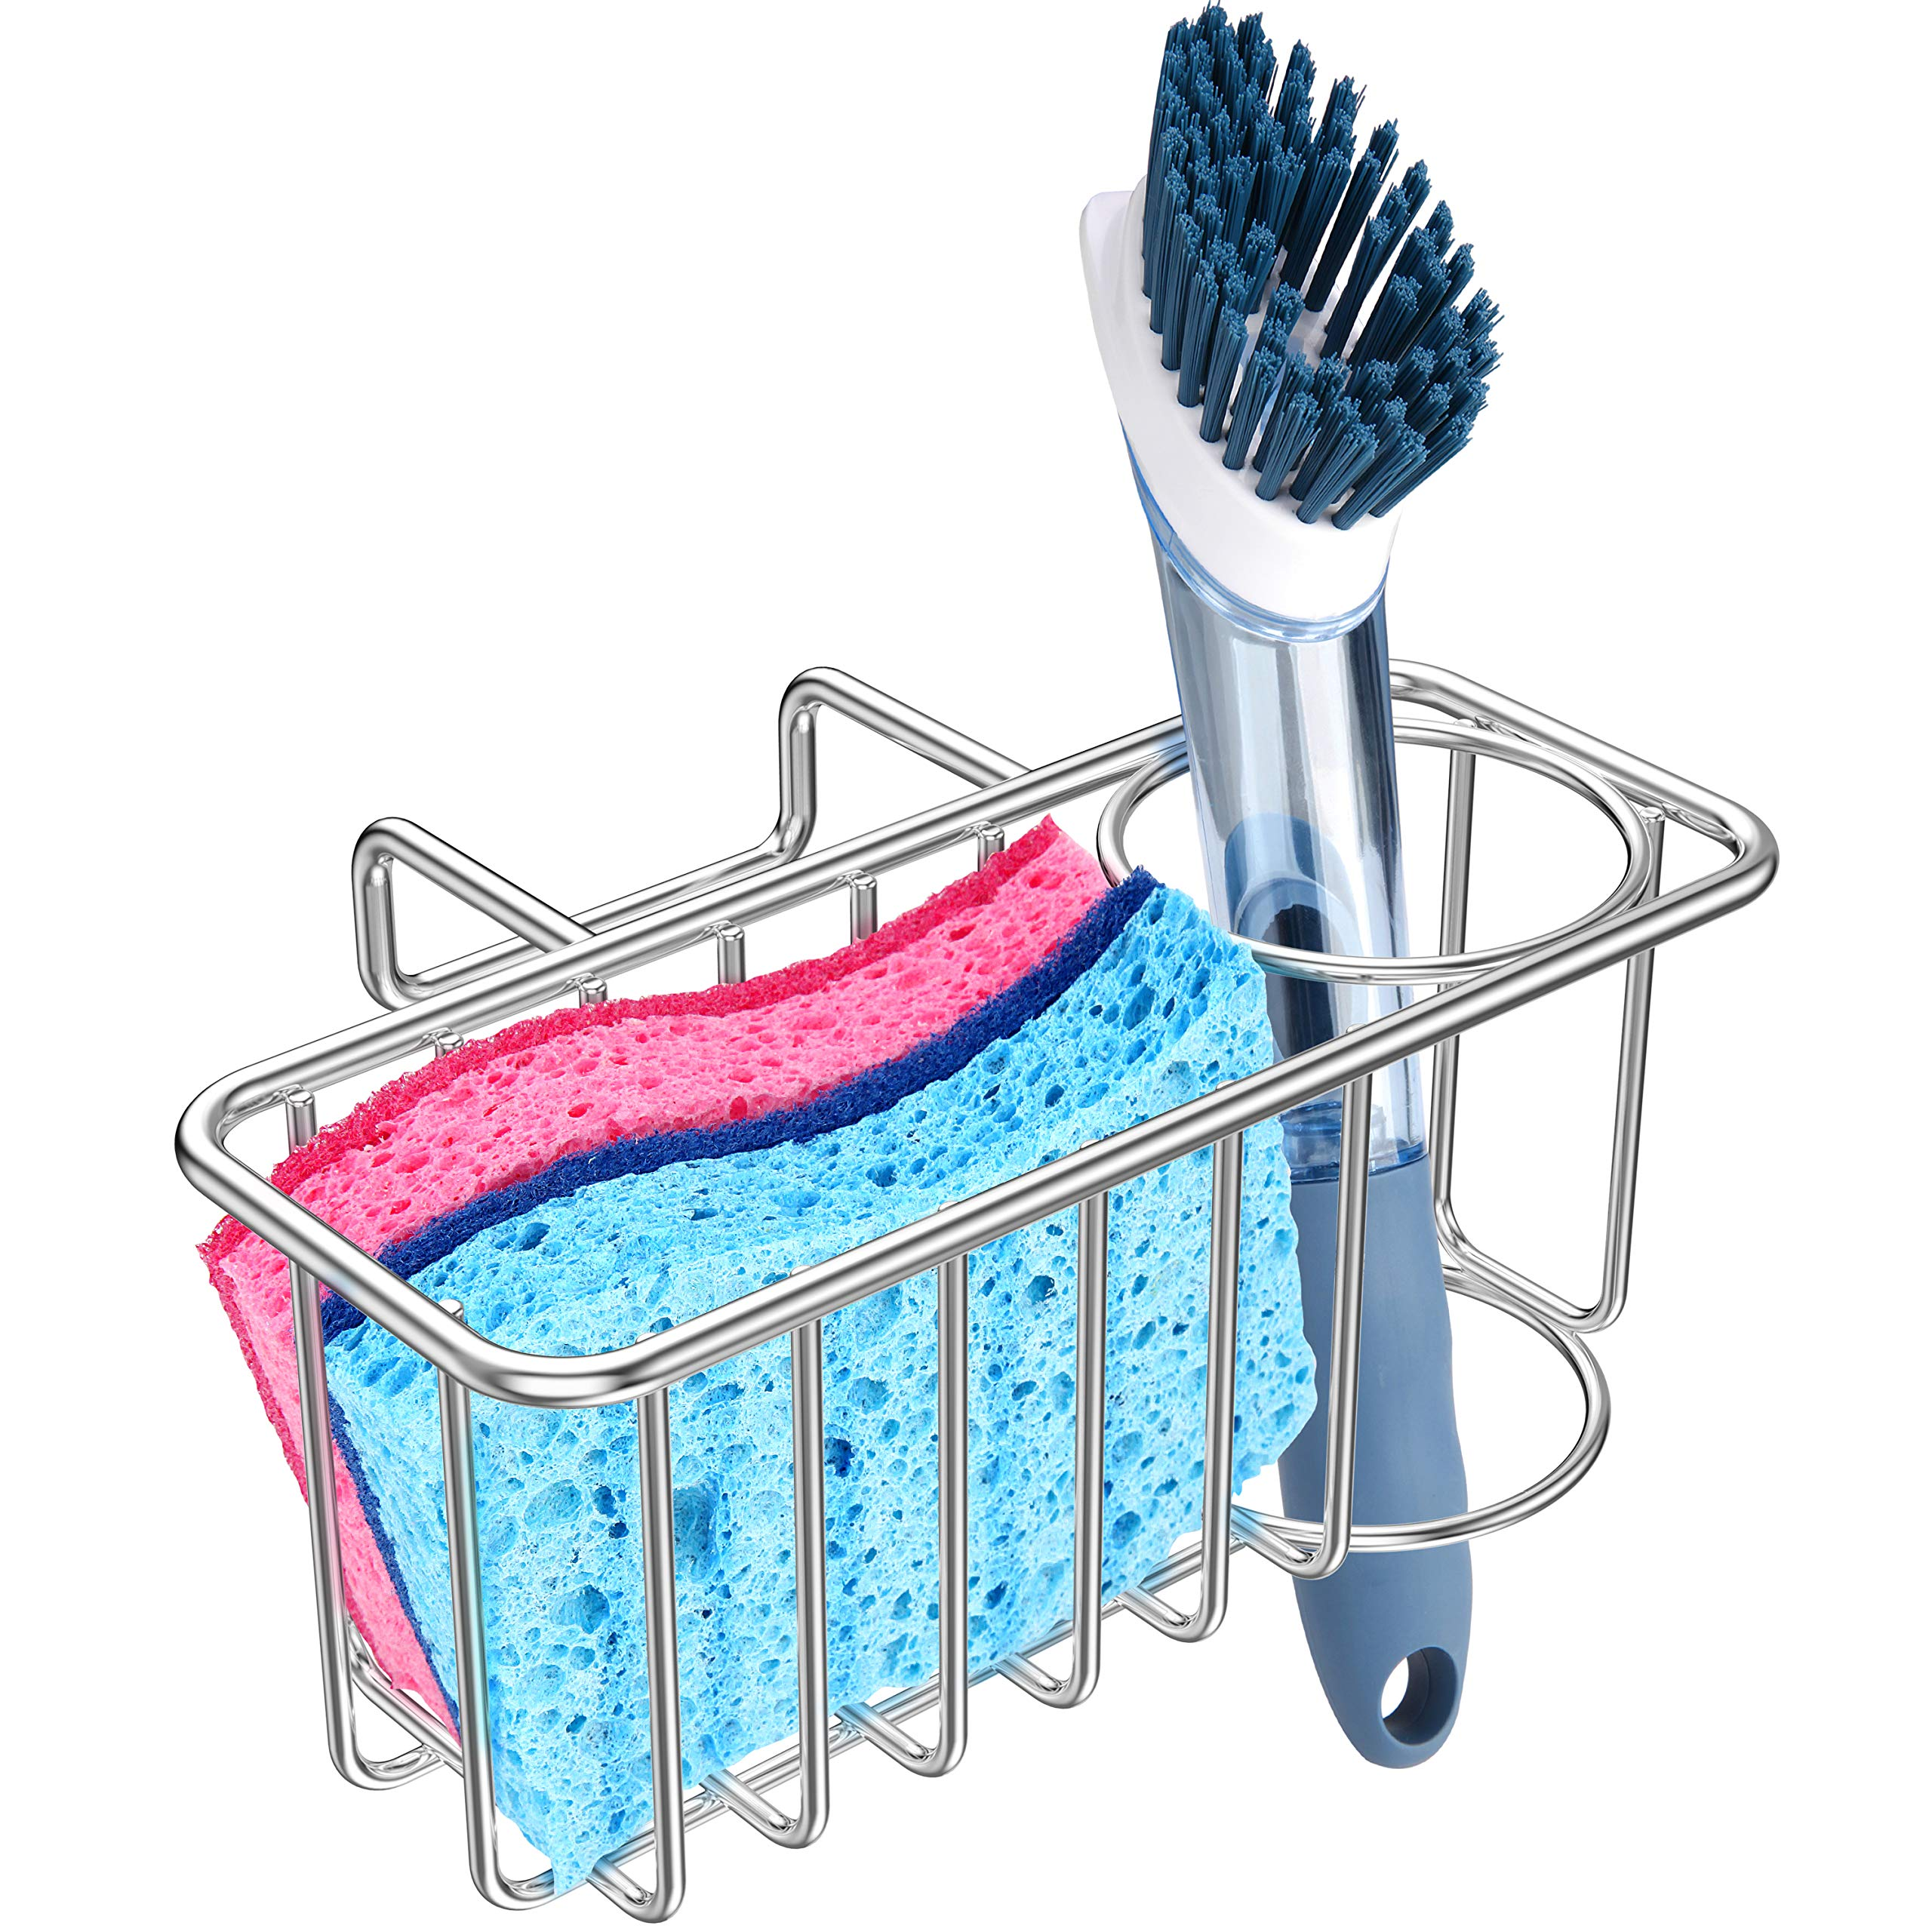 Kitchen Sponge Holder - Sink Brush Caddy Soap Dishwashing Liquid Drainer Rack, SUS304 Stainless Steel - Silver